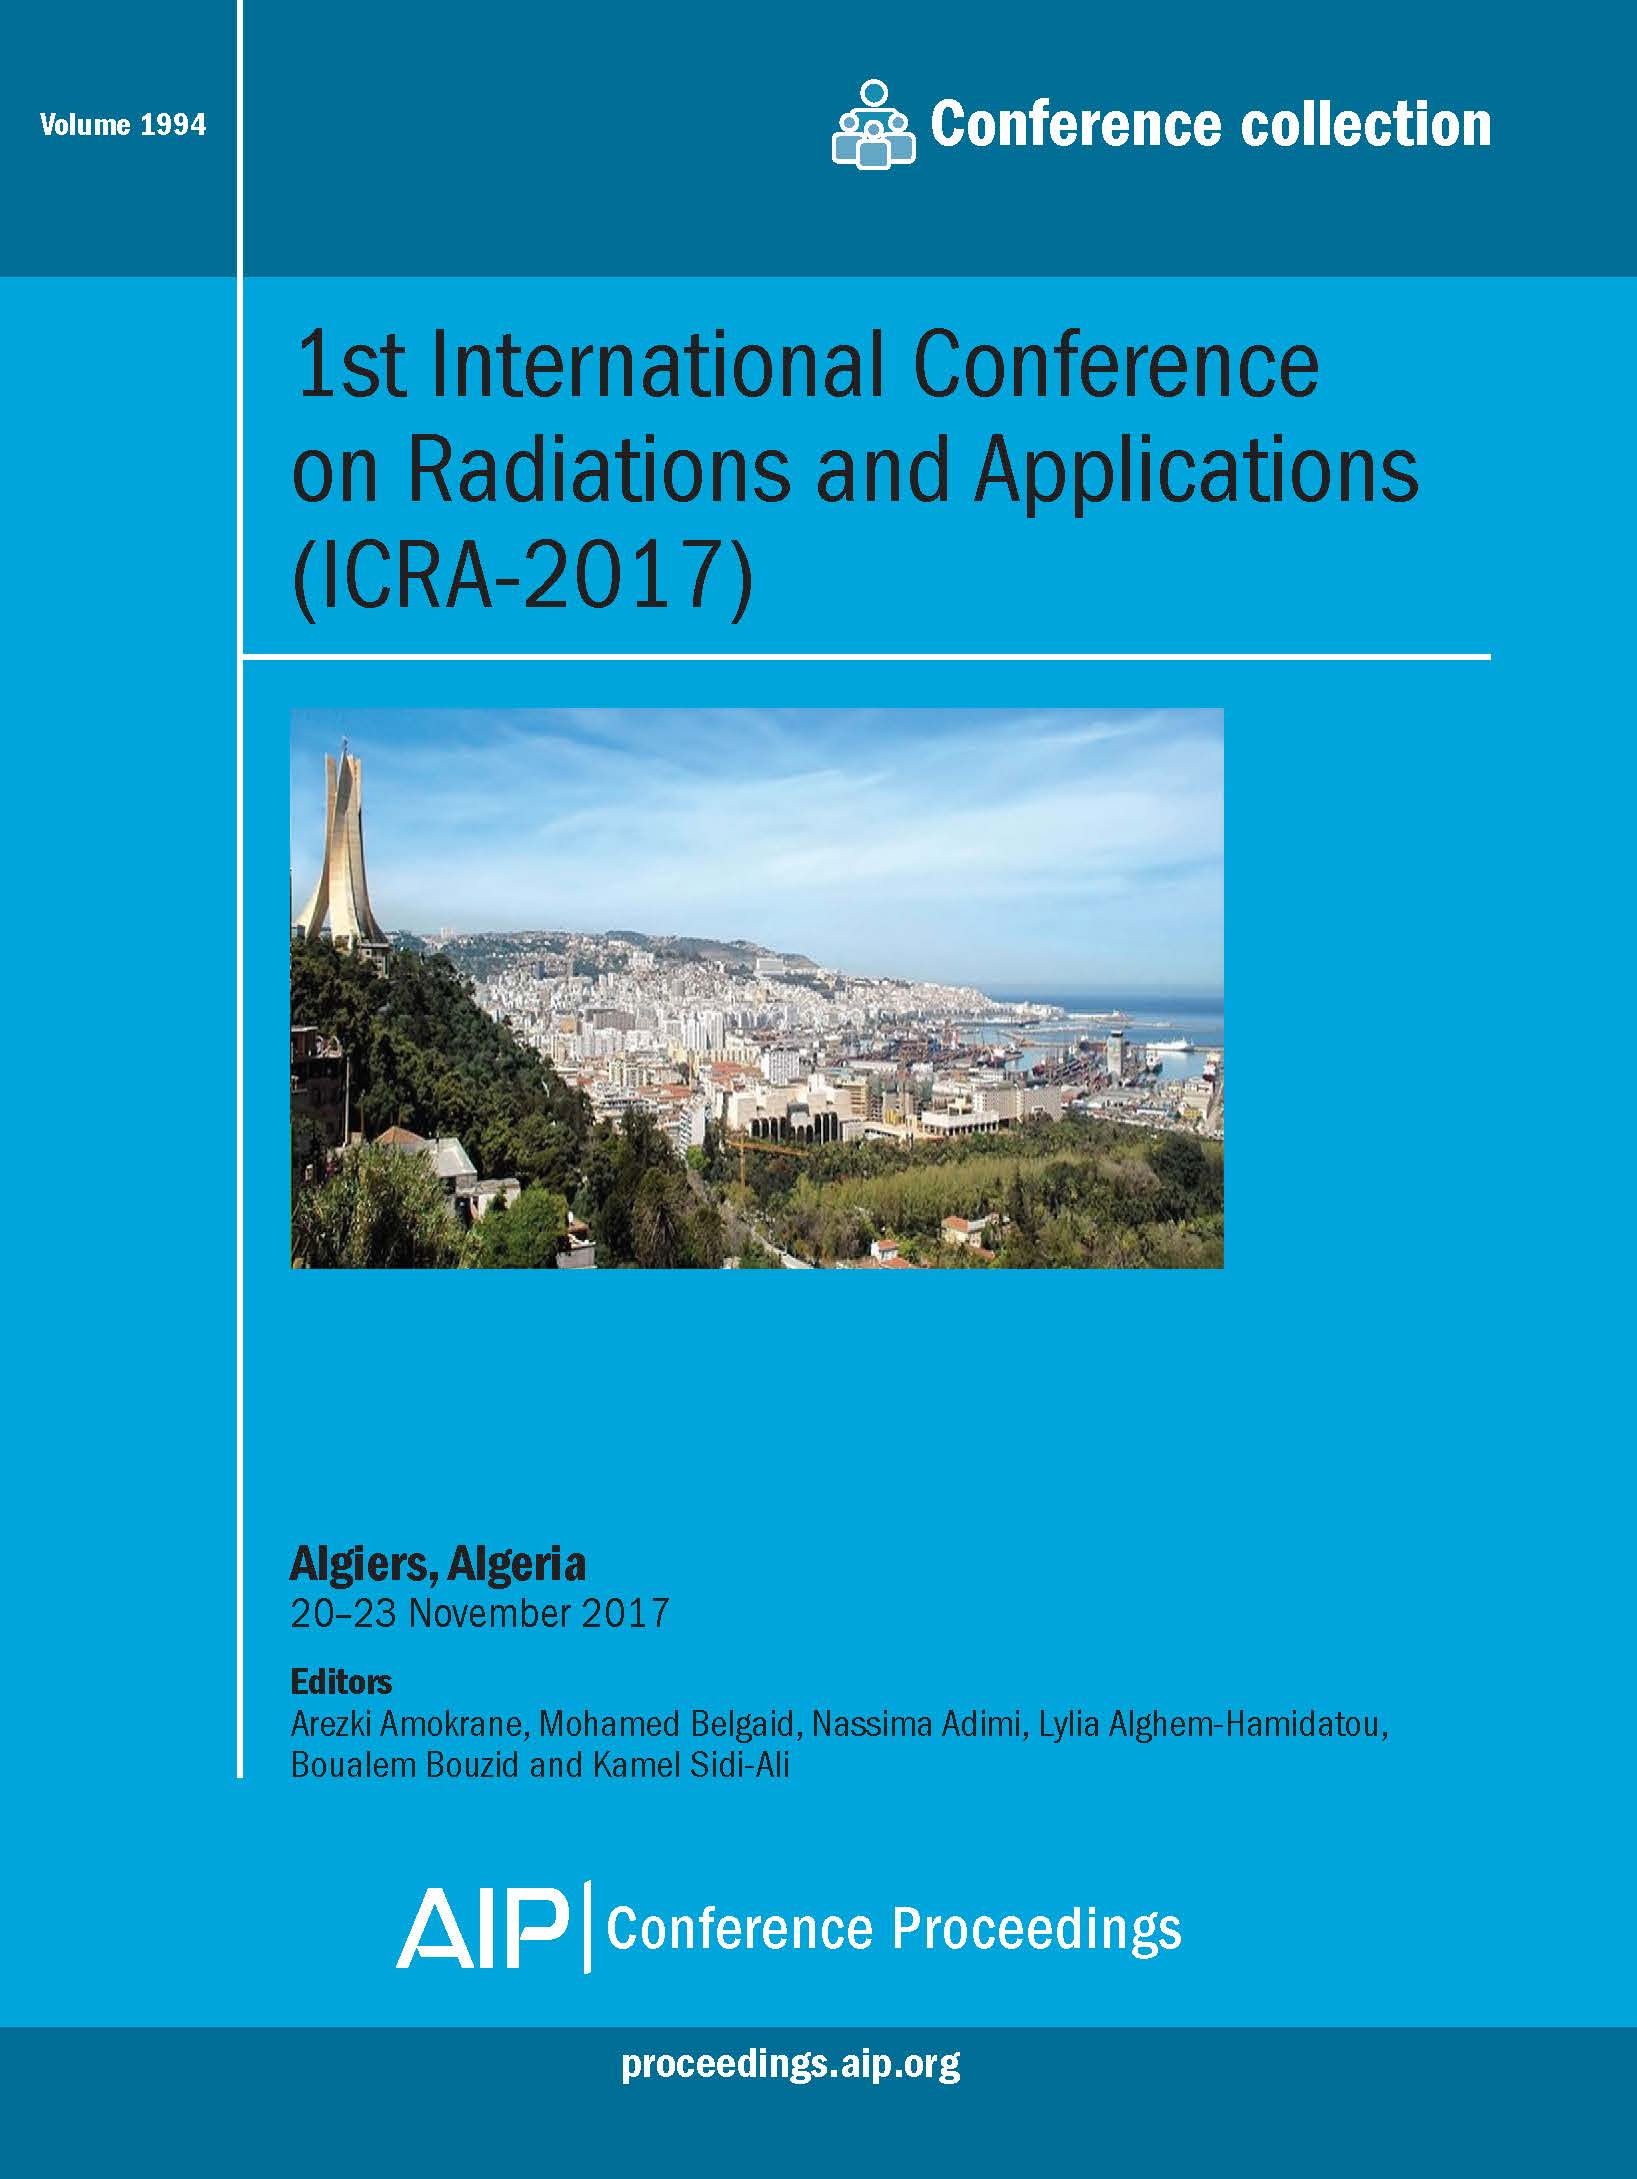 Volume 1994: 1st International Conference on Radiations and